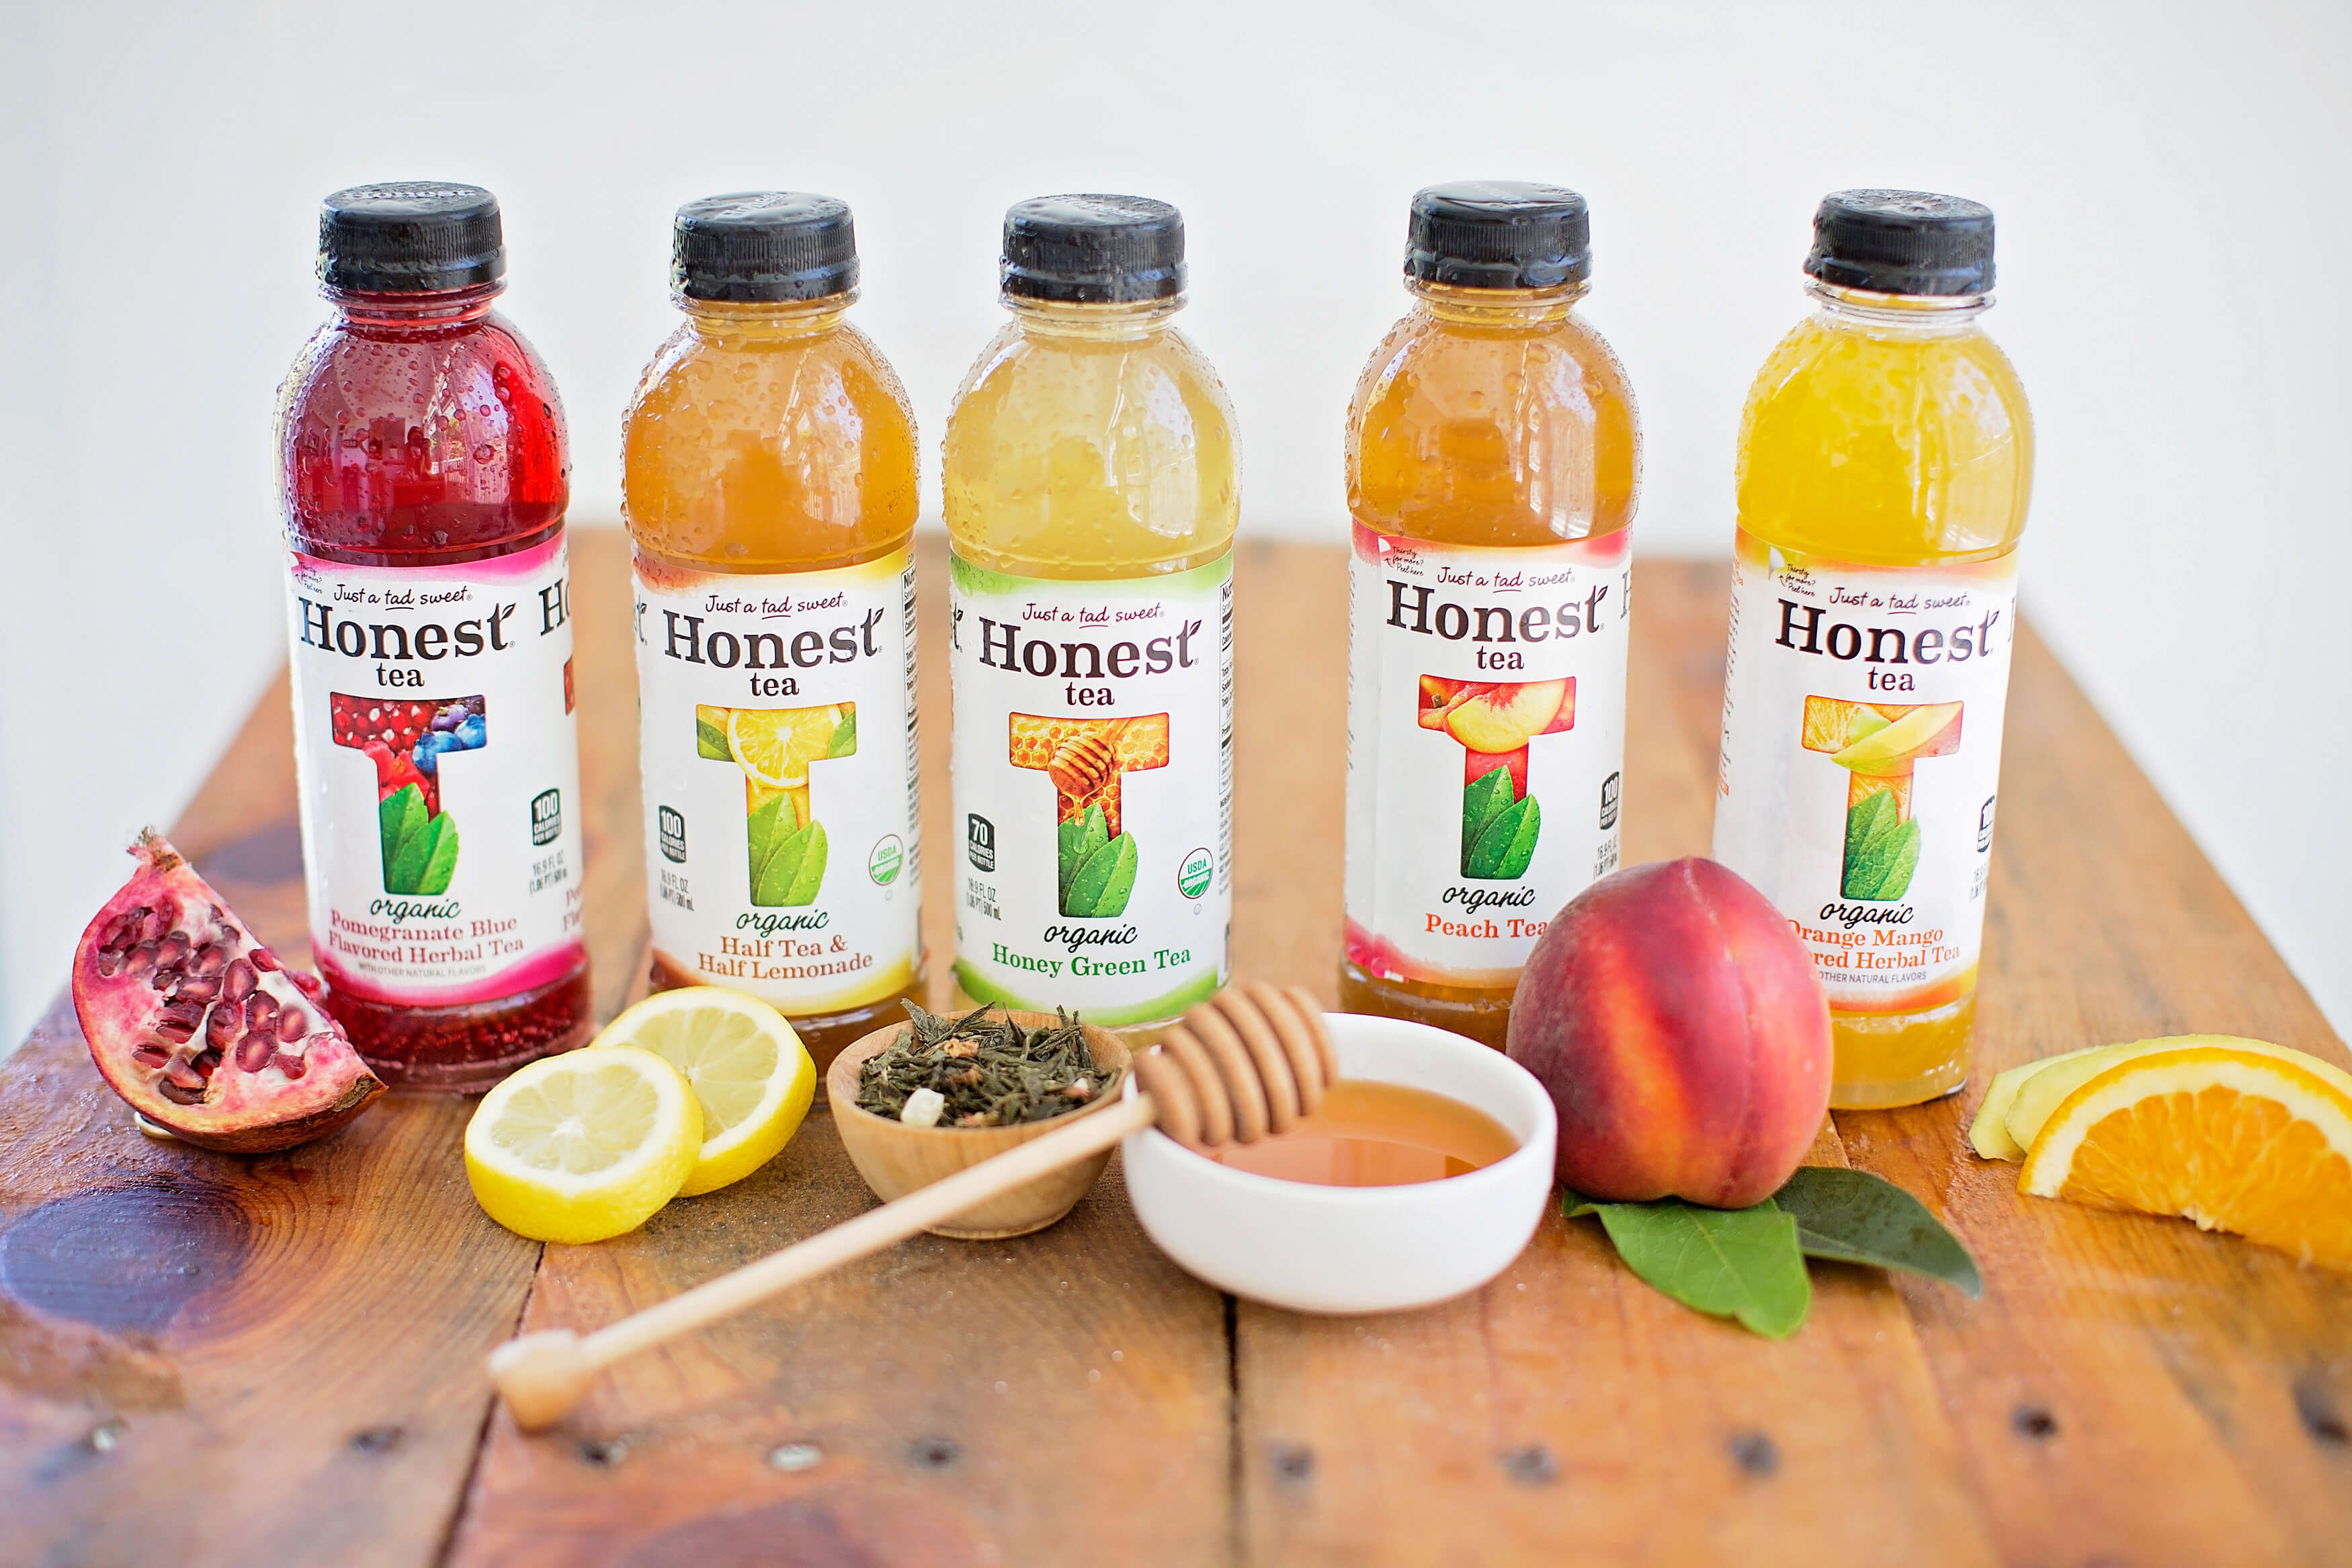 Honest Tea - A Refreshing and Beloved Beverage Line